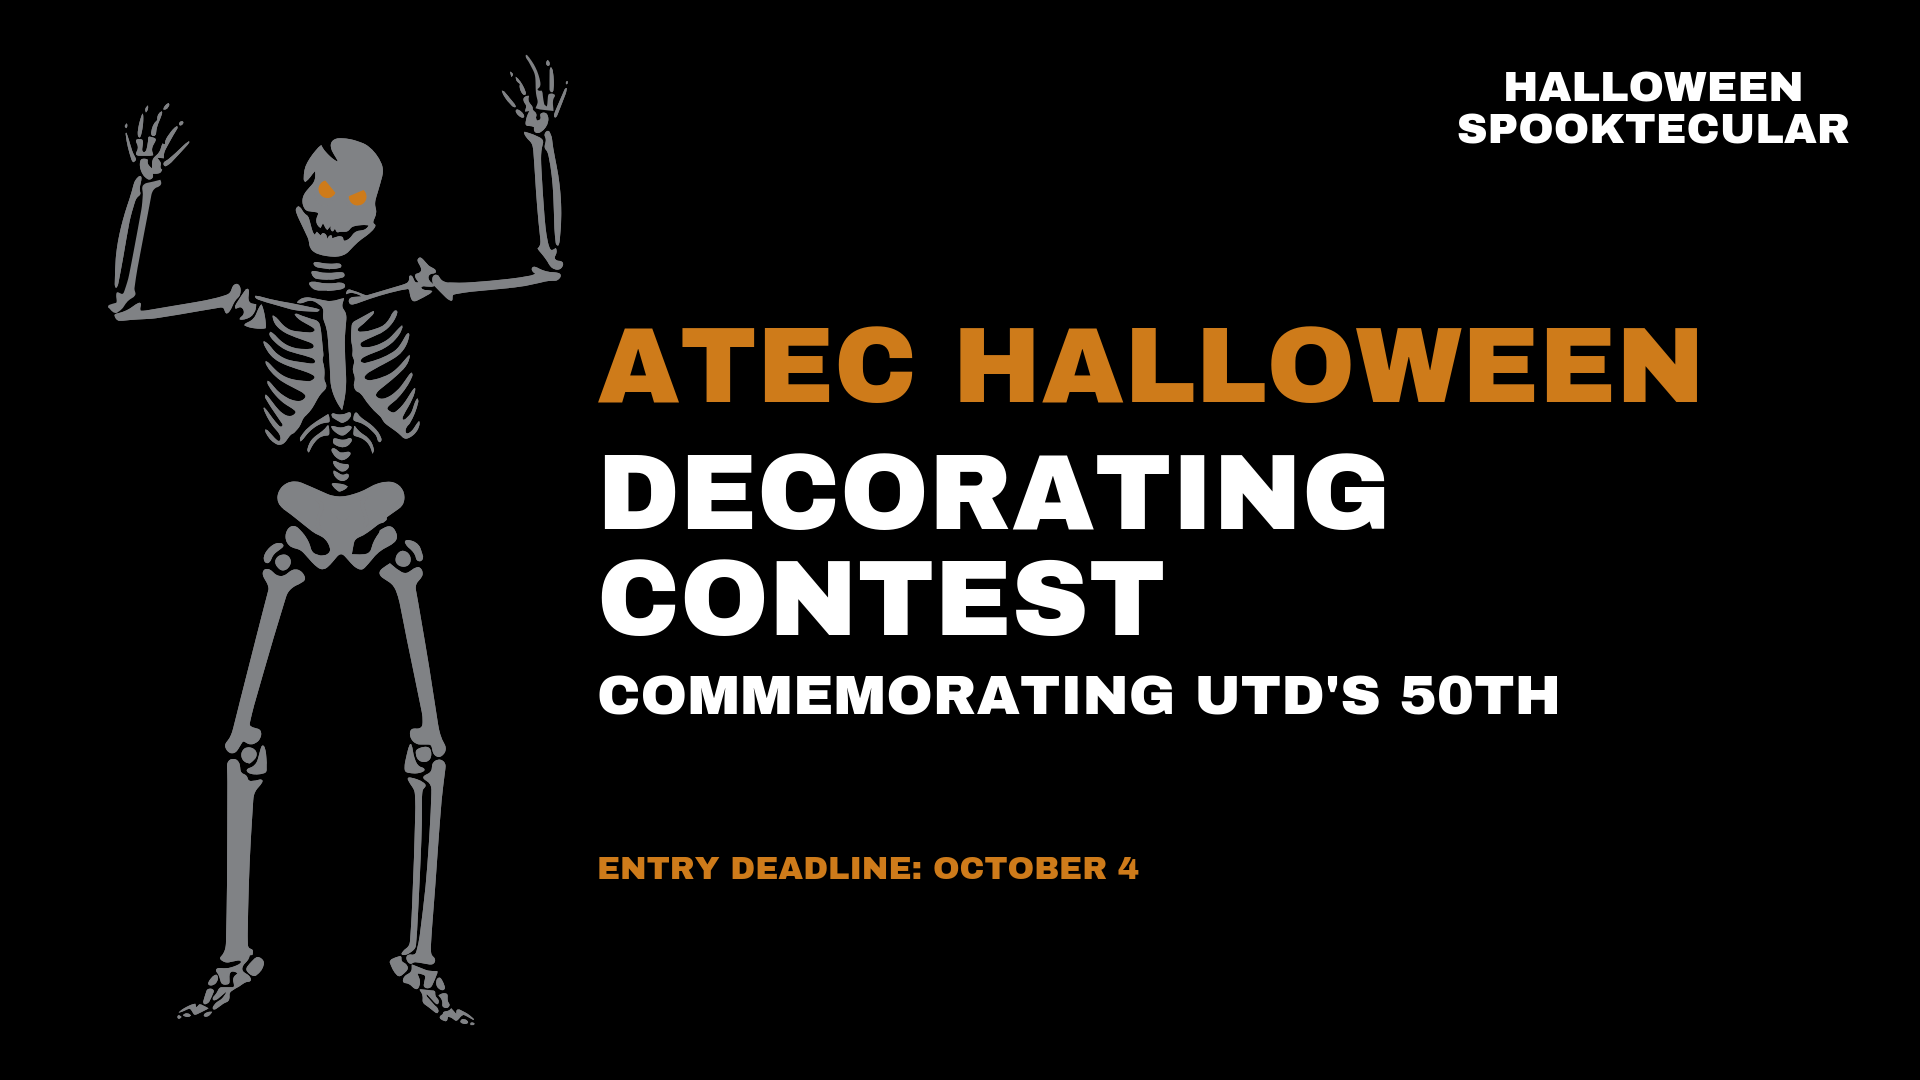 ATEC Halloween Decorating Contest